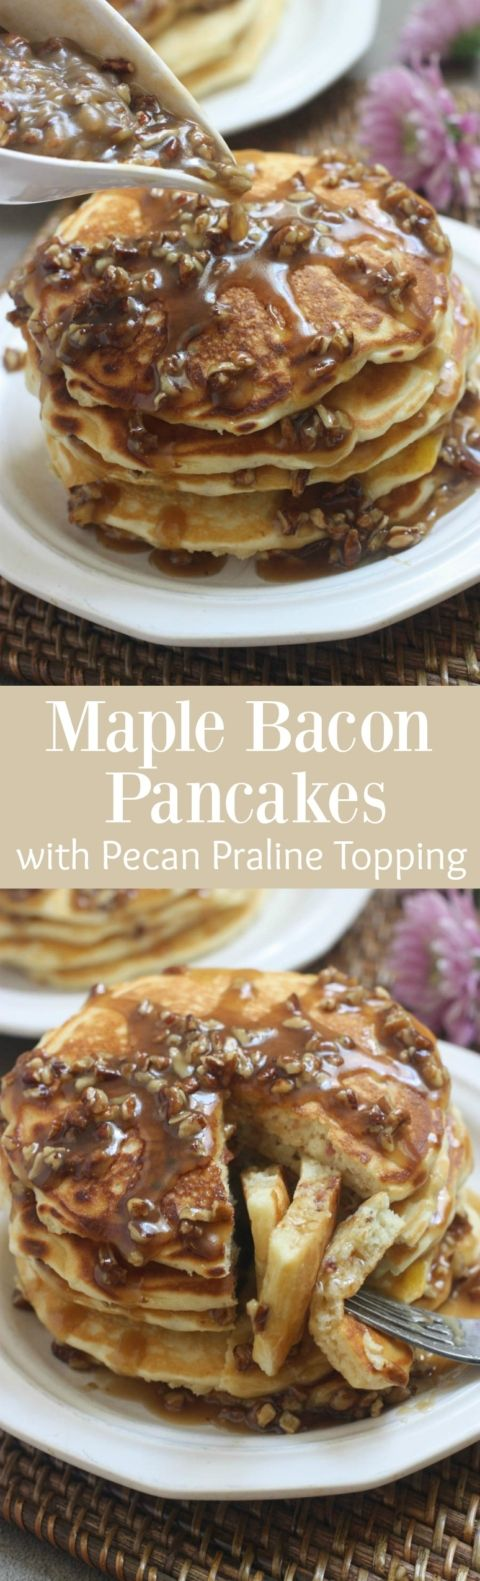 Maple Bacon Pancakes with Pecan Praline Topping | Tastes Better From Scratch